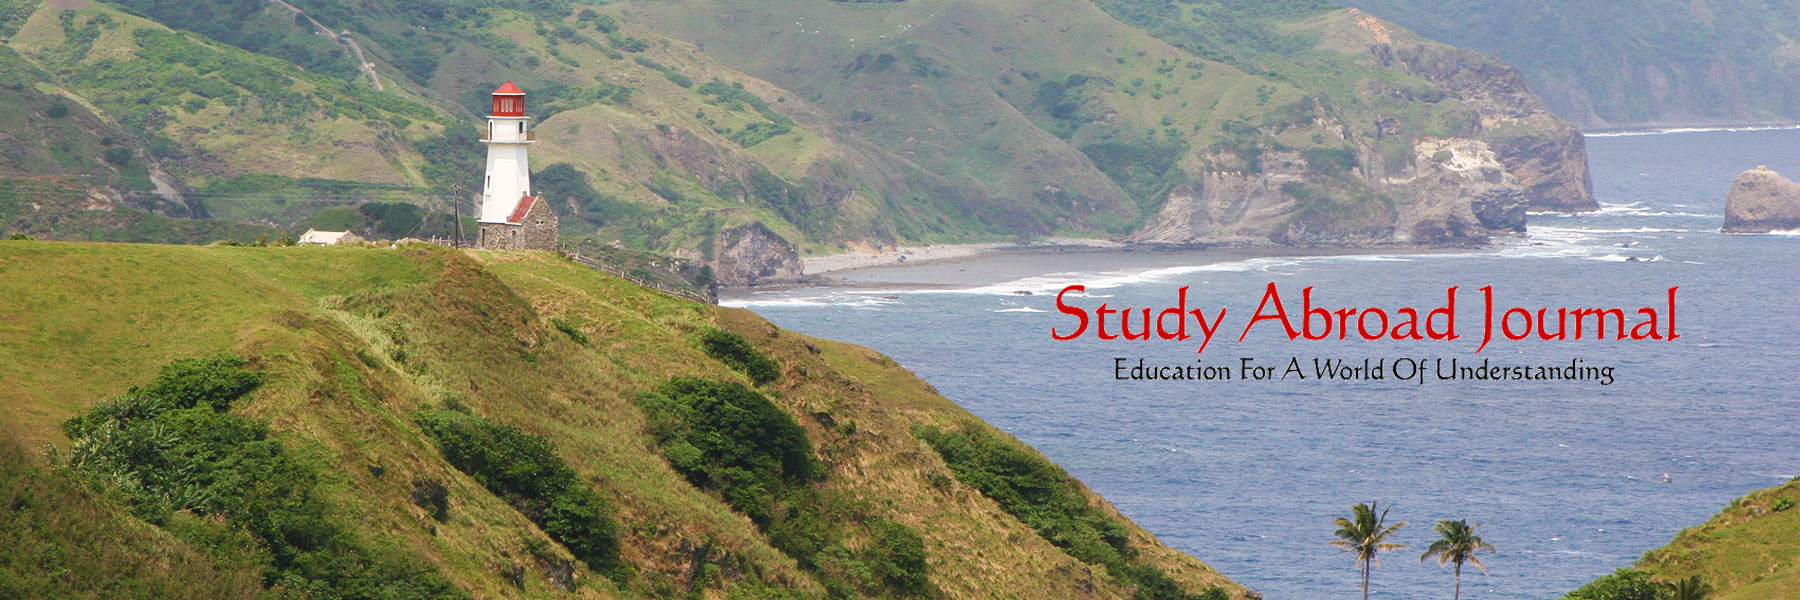 Featured Story | The Batanes Islands and the Ivantan Culture - The Philippines - Steven Andrew Martin Ph.D.